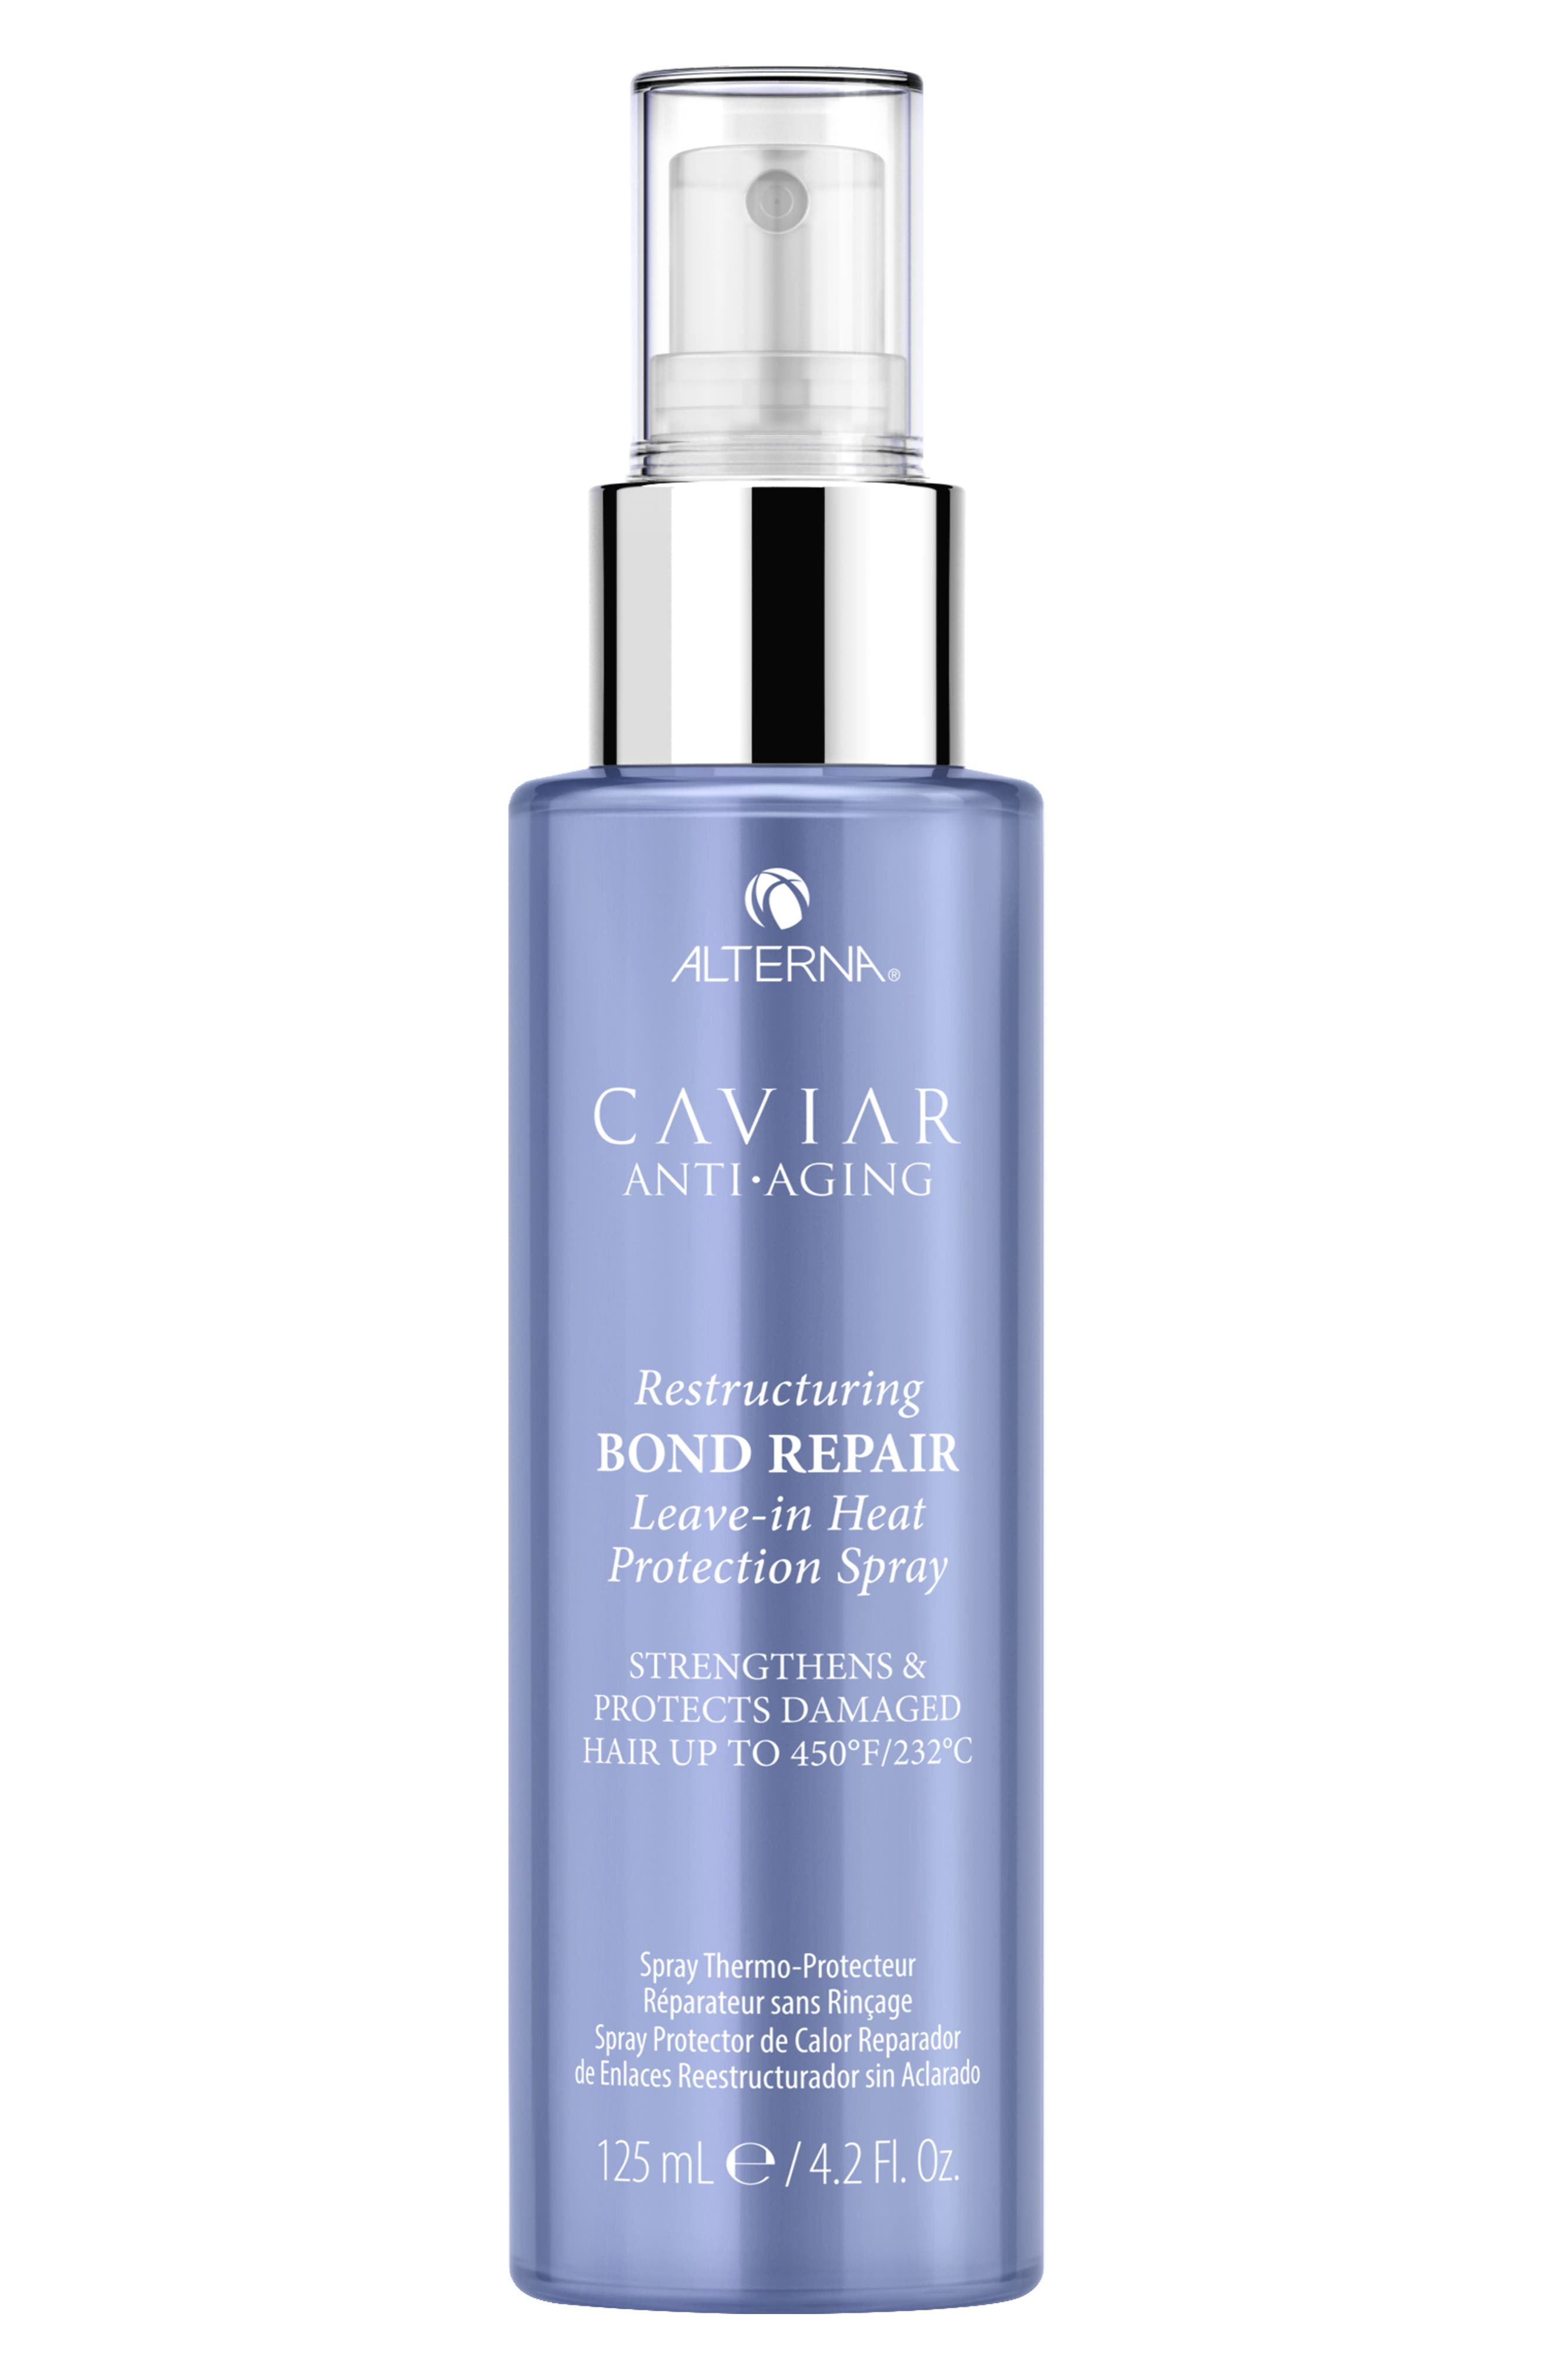 Caviar Anti-Aging Restructuring Bond Repair Leave-in Heat Protection Spray,                             Main thumbnail 1, color,                             000